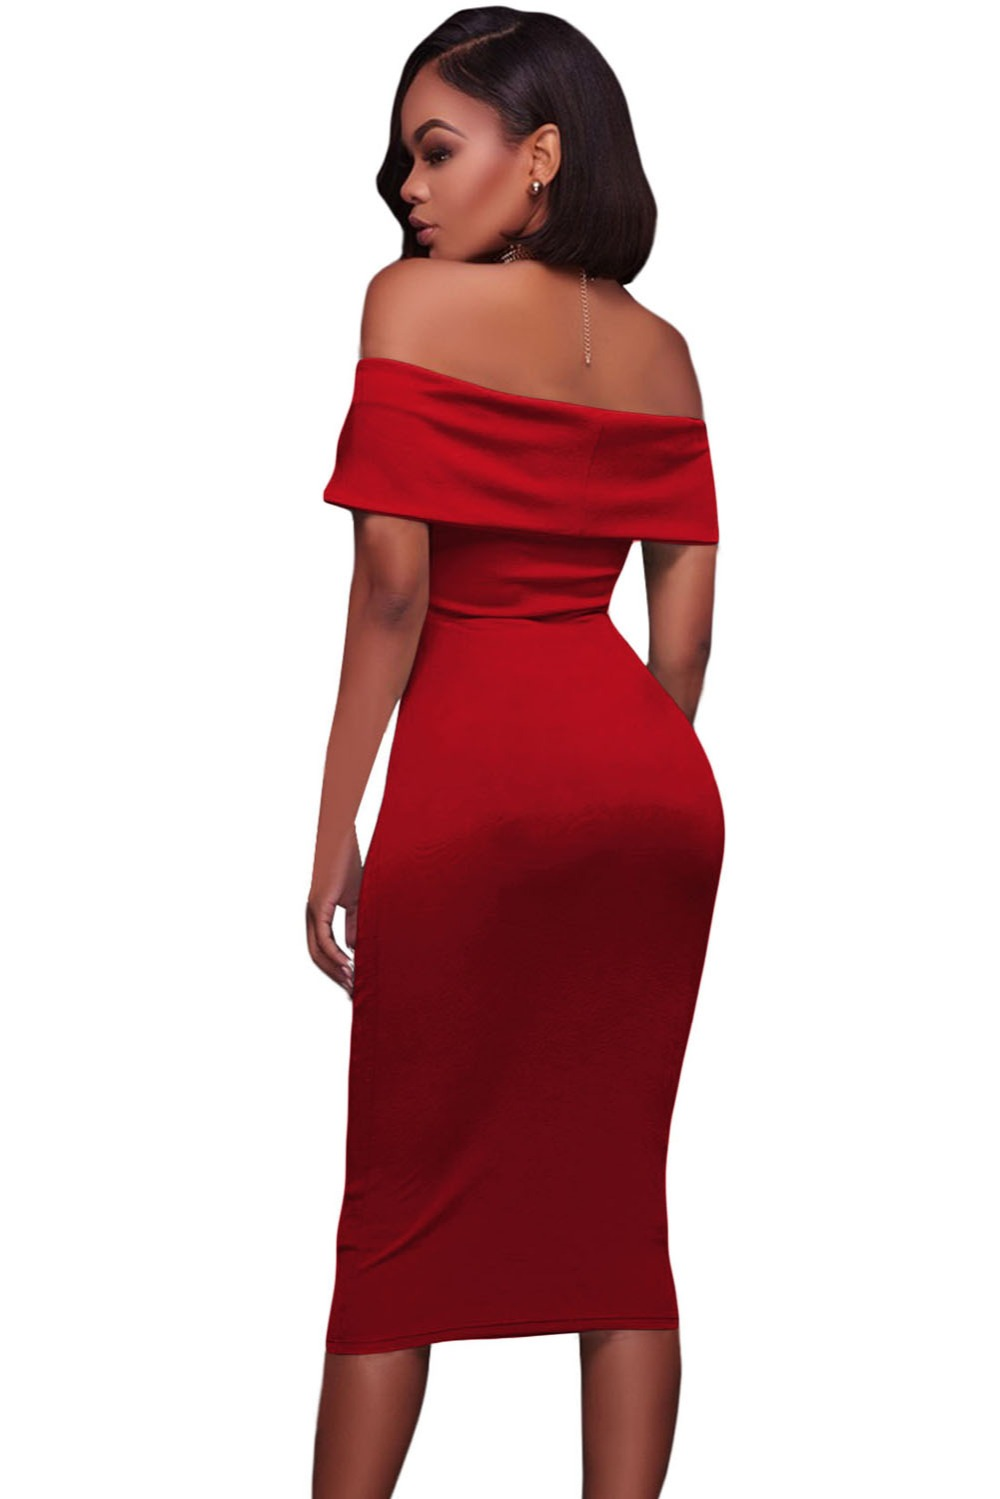 Red-Ruched-Off-Shoulder-Bodycon-Midi-Dress-LC61507-3-2